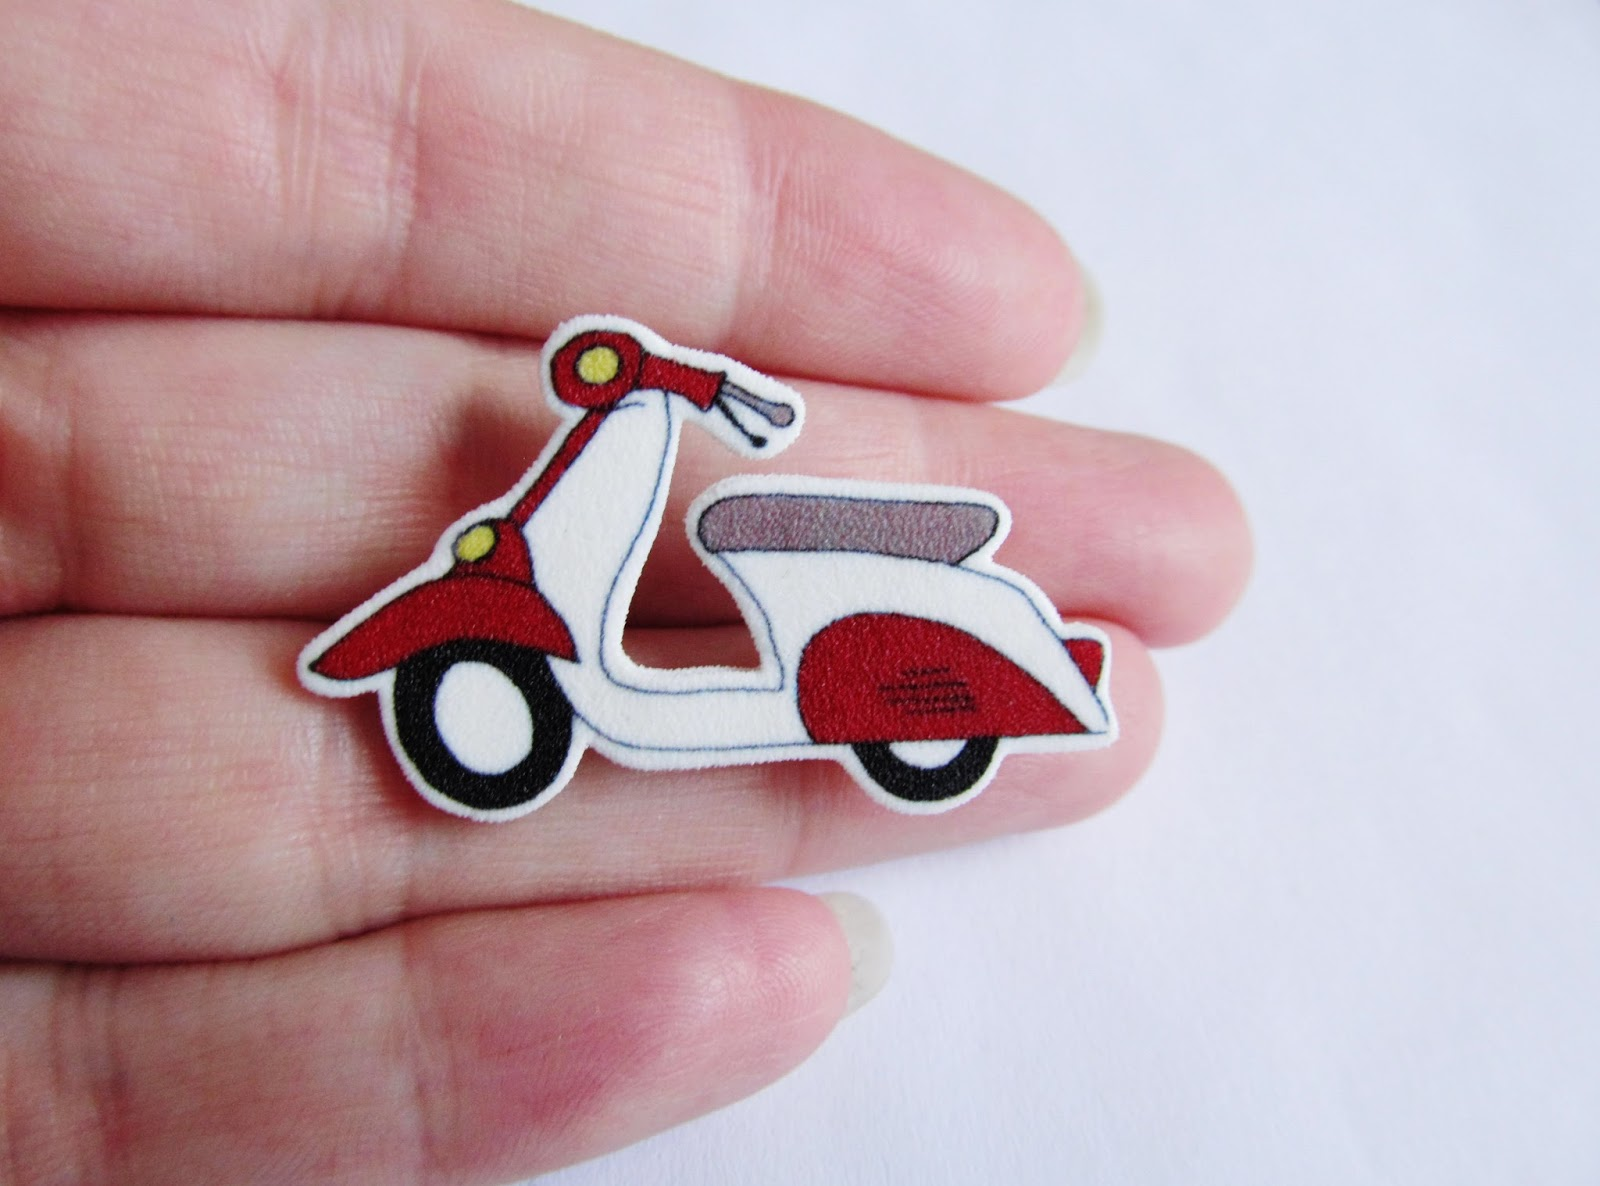 Dottiedollie August 2013 Scooter Vip Keychain Also Scooting Along With Them Are